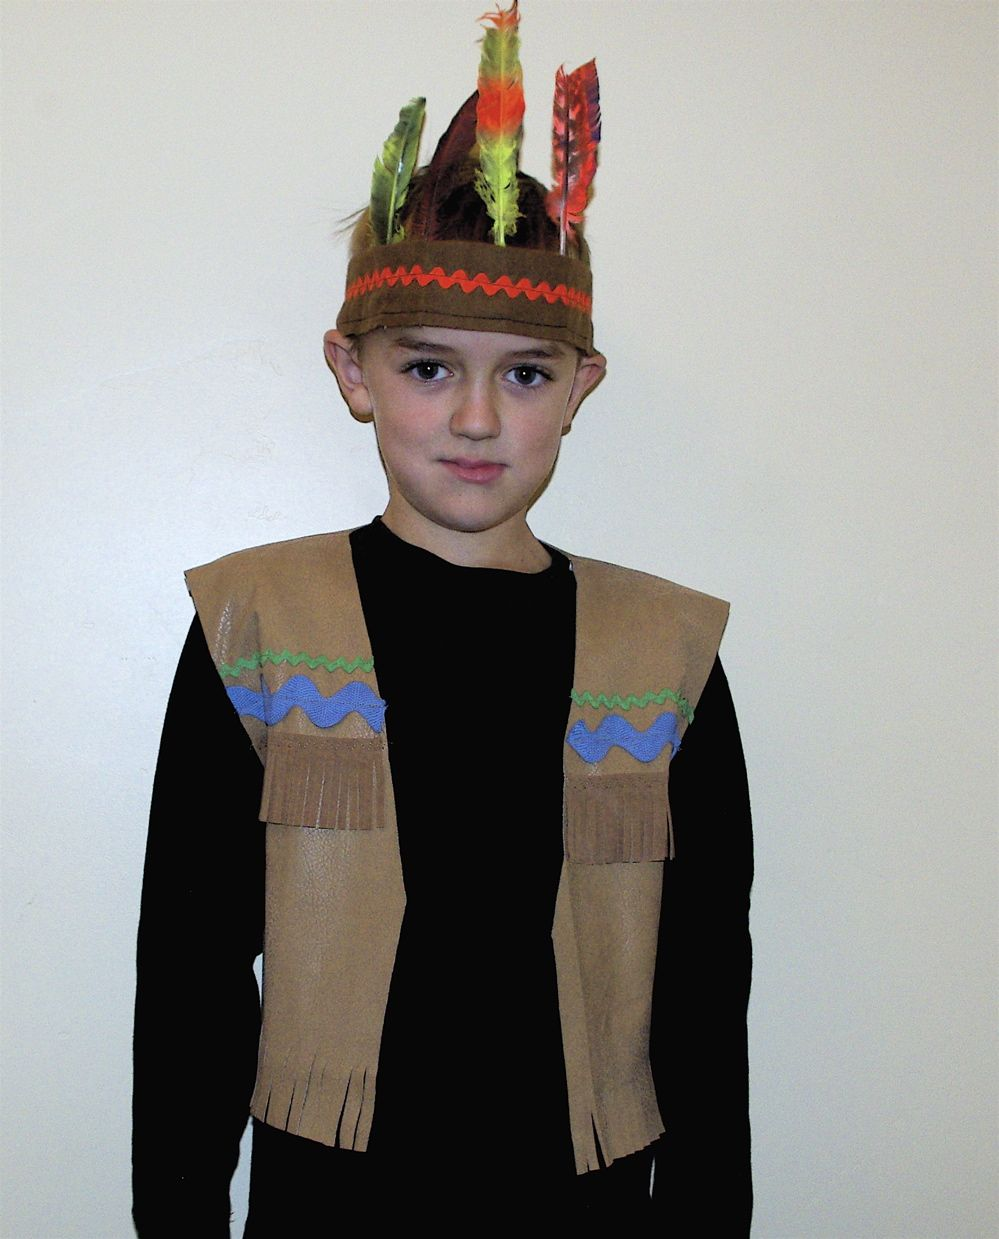 How to make a native american indian vest noelle o designs how to make a native american indian vest noelle o designs indian costume kidsindian costumesdiy solutioingenieria Image collections